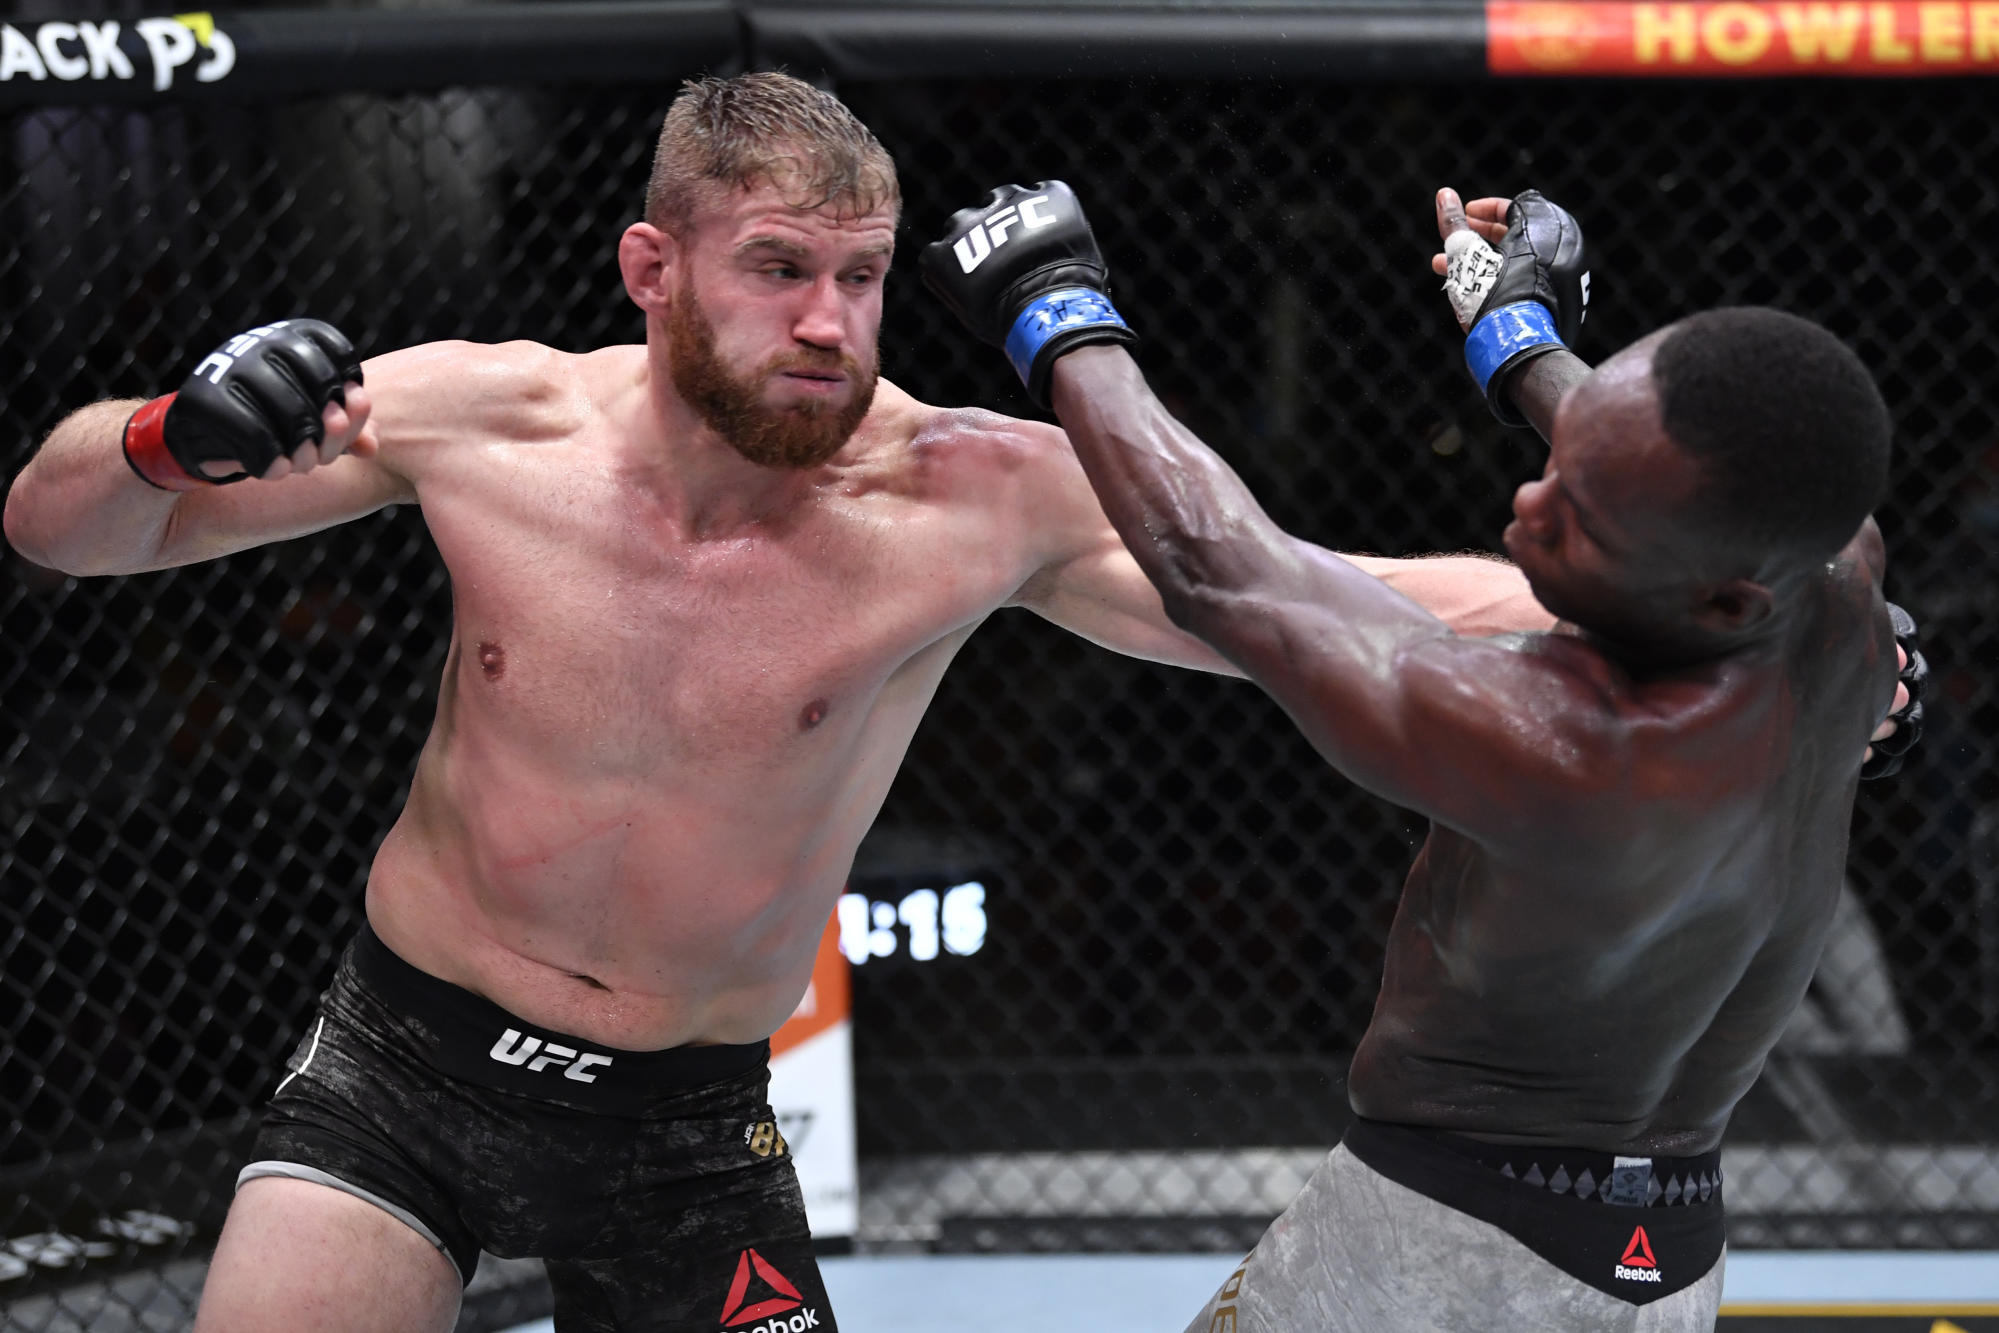 UFC 259: Jan Blachowicz overpowers Israel Adesanya to retain title